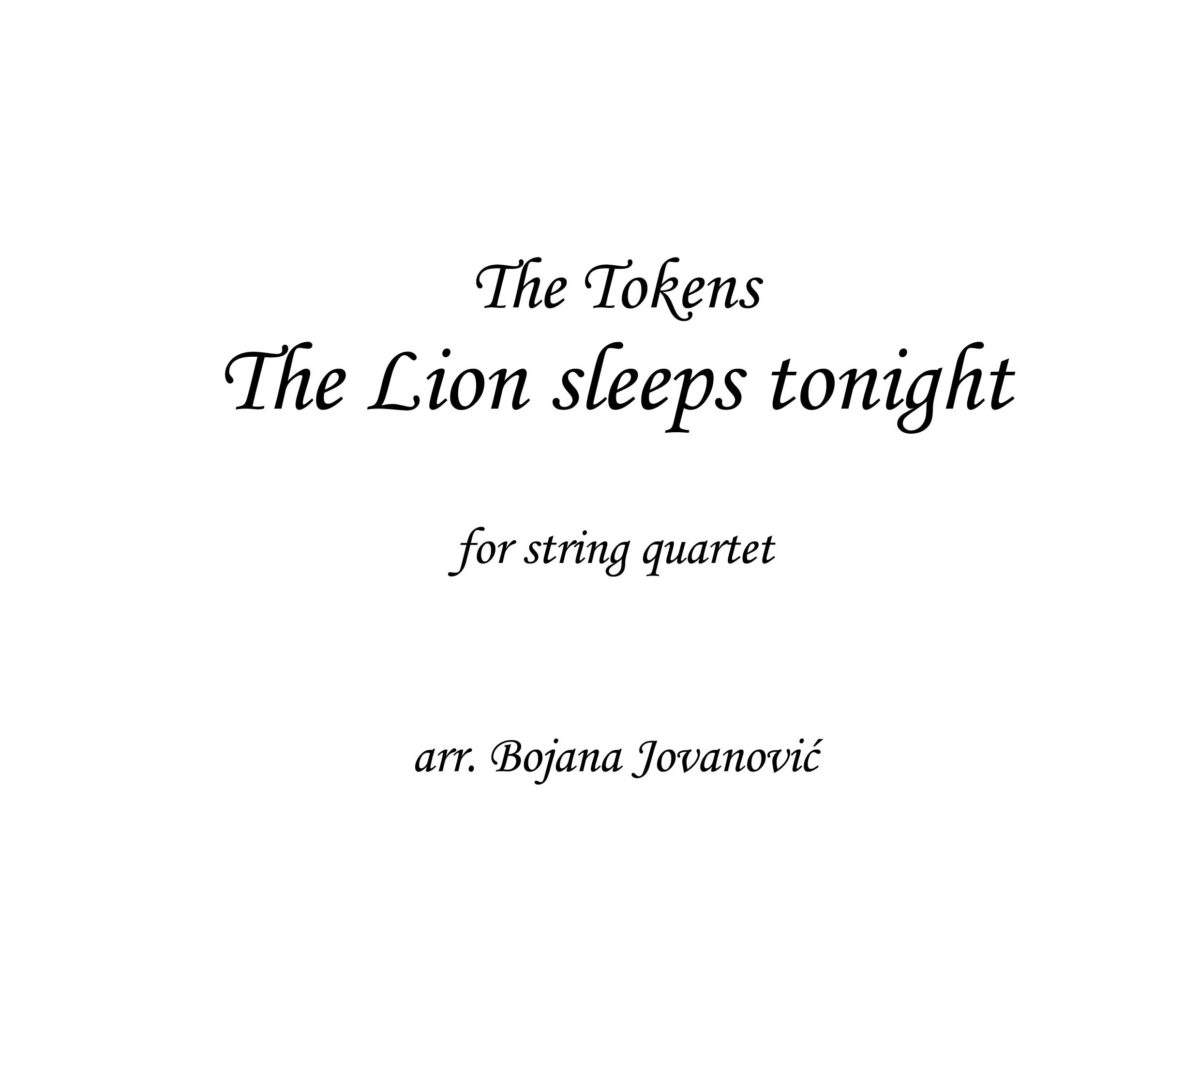 The Lion sleeps tonight (Lion King) - Sheet music